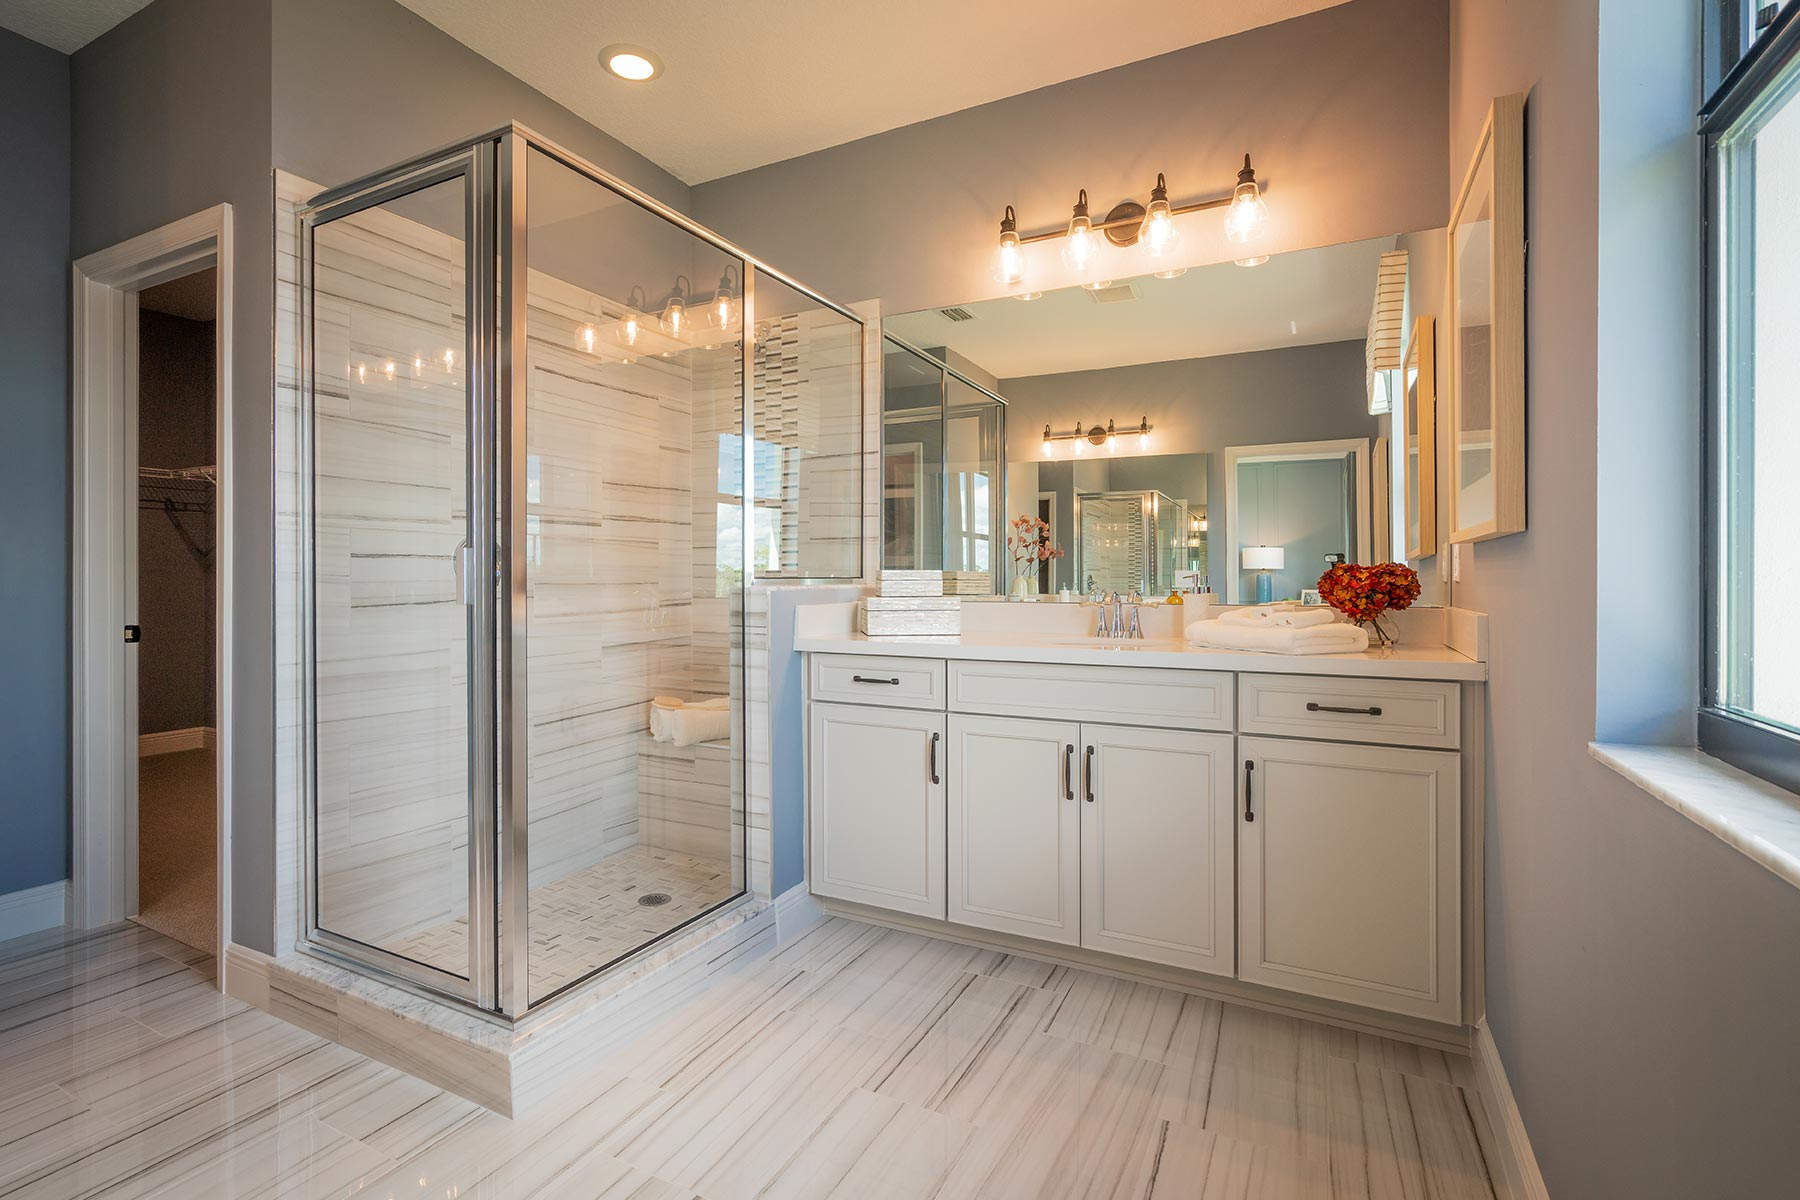 Oakley Plan Bathroom_Master Bath at Saddlewood in Lake Worth Florida by Mattamy Homes